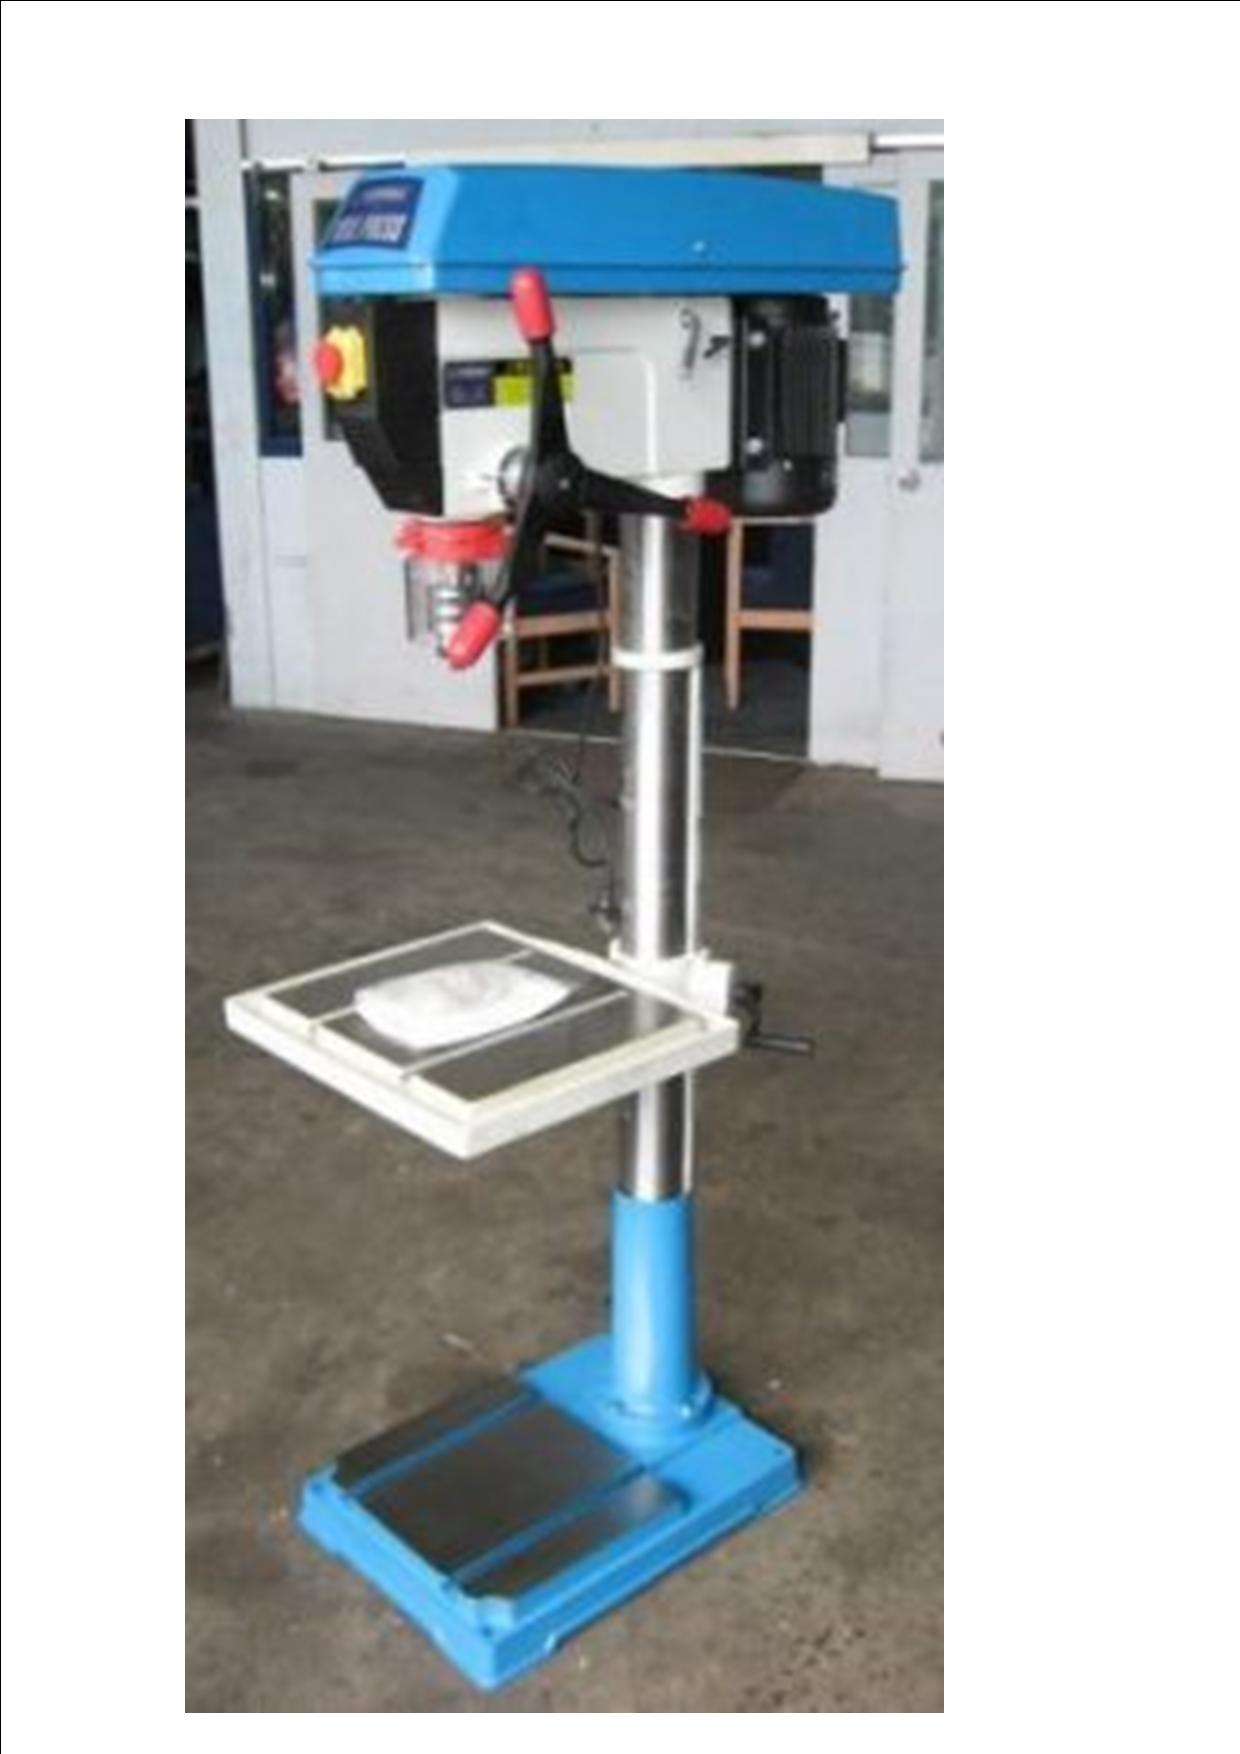 Drillpress WD32 New, single phase 1.5hp pedestal mount, MT4 keless chuck